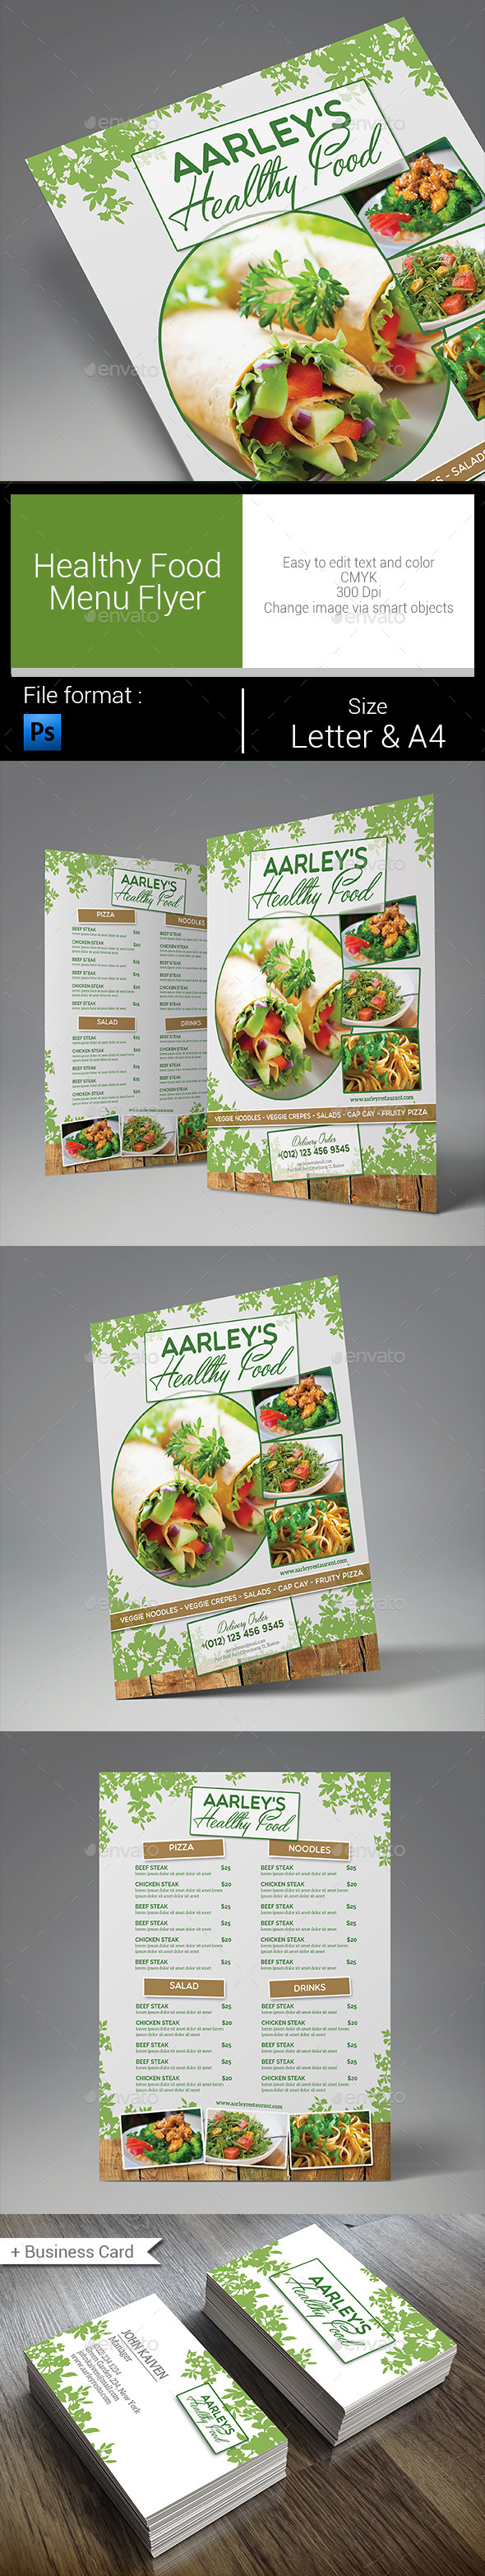 GraphicRiver Healthy Food Menu Flyer 10496914